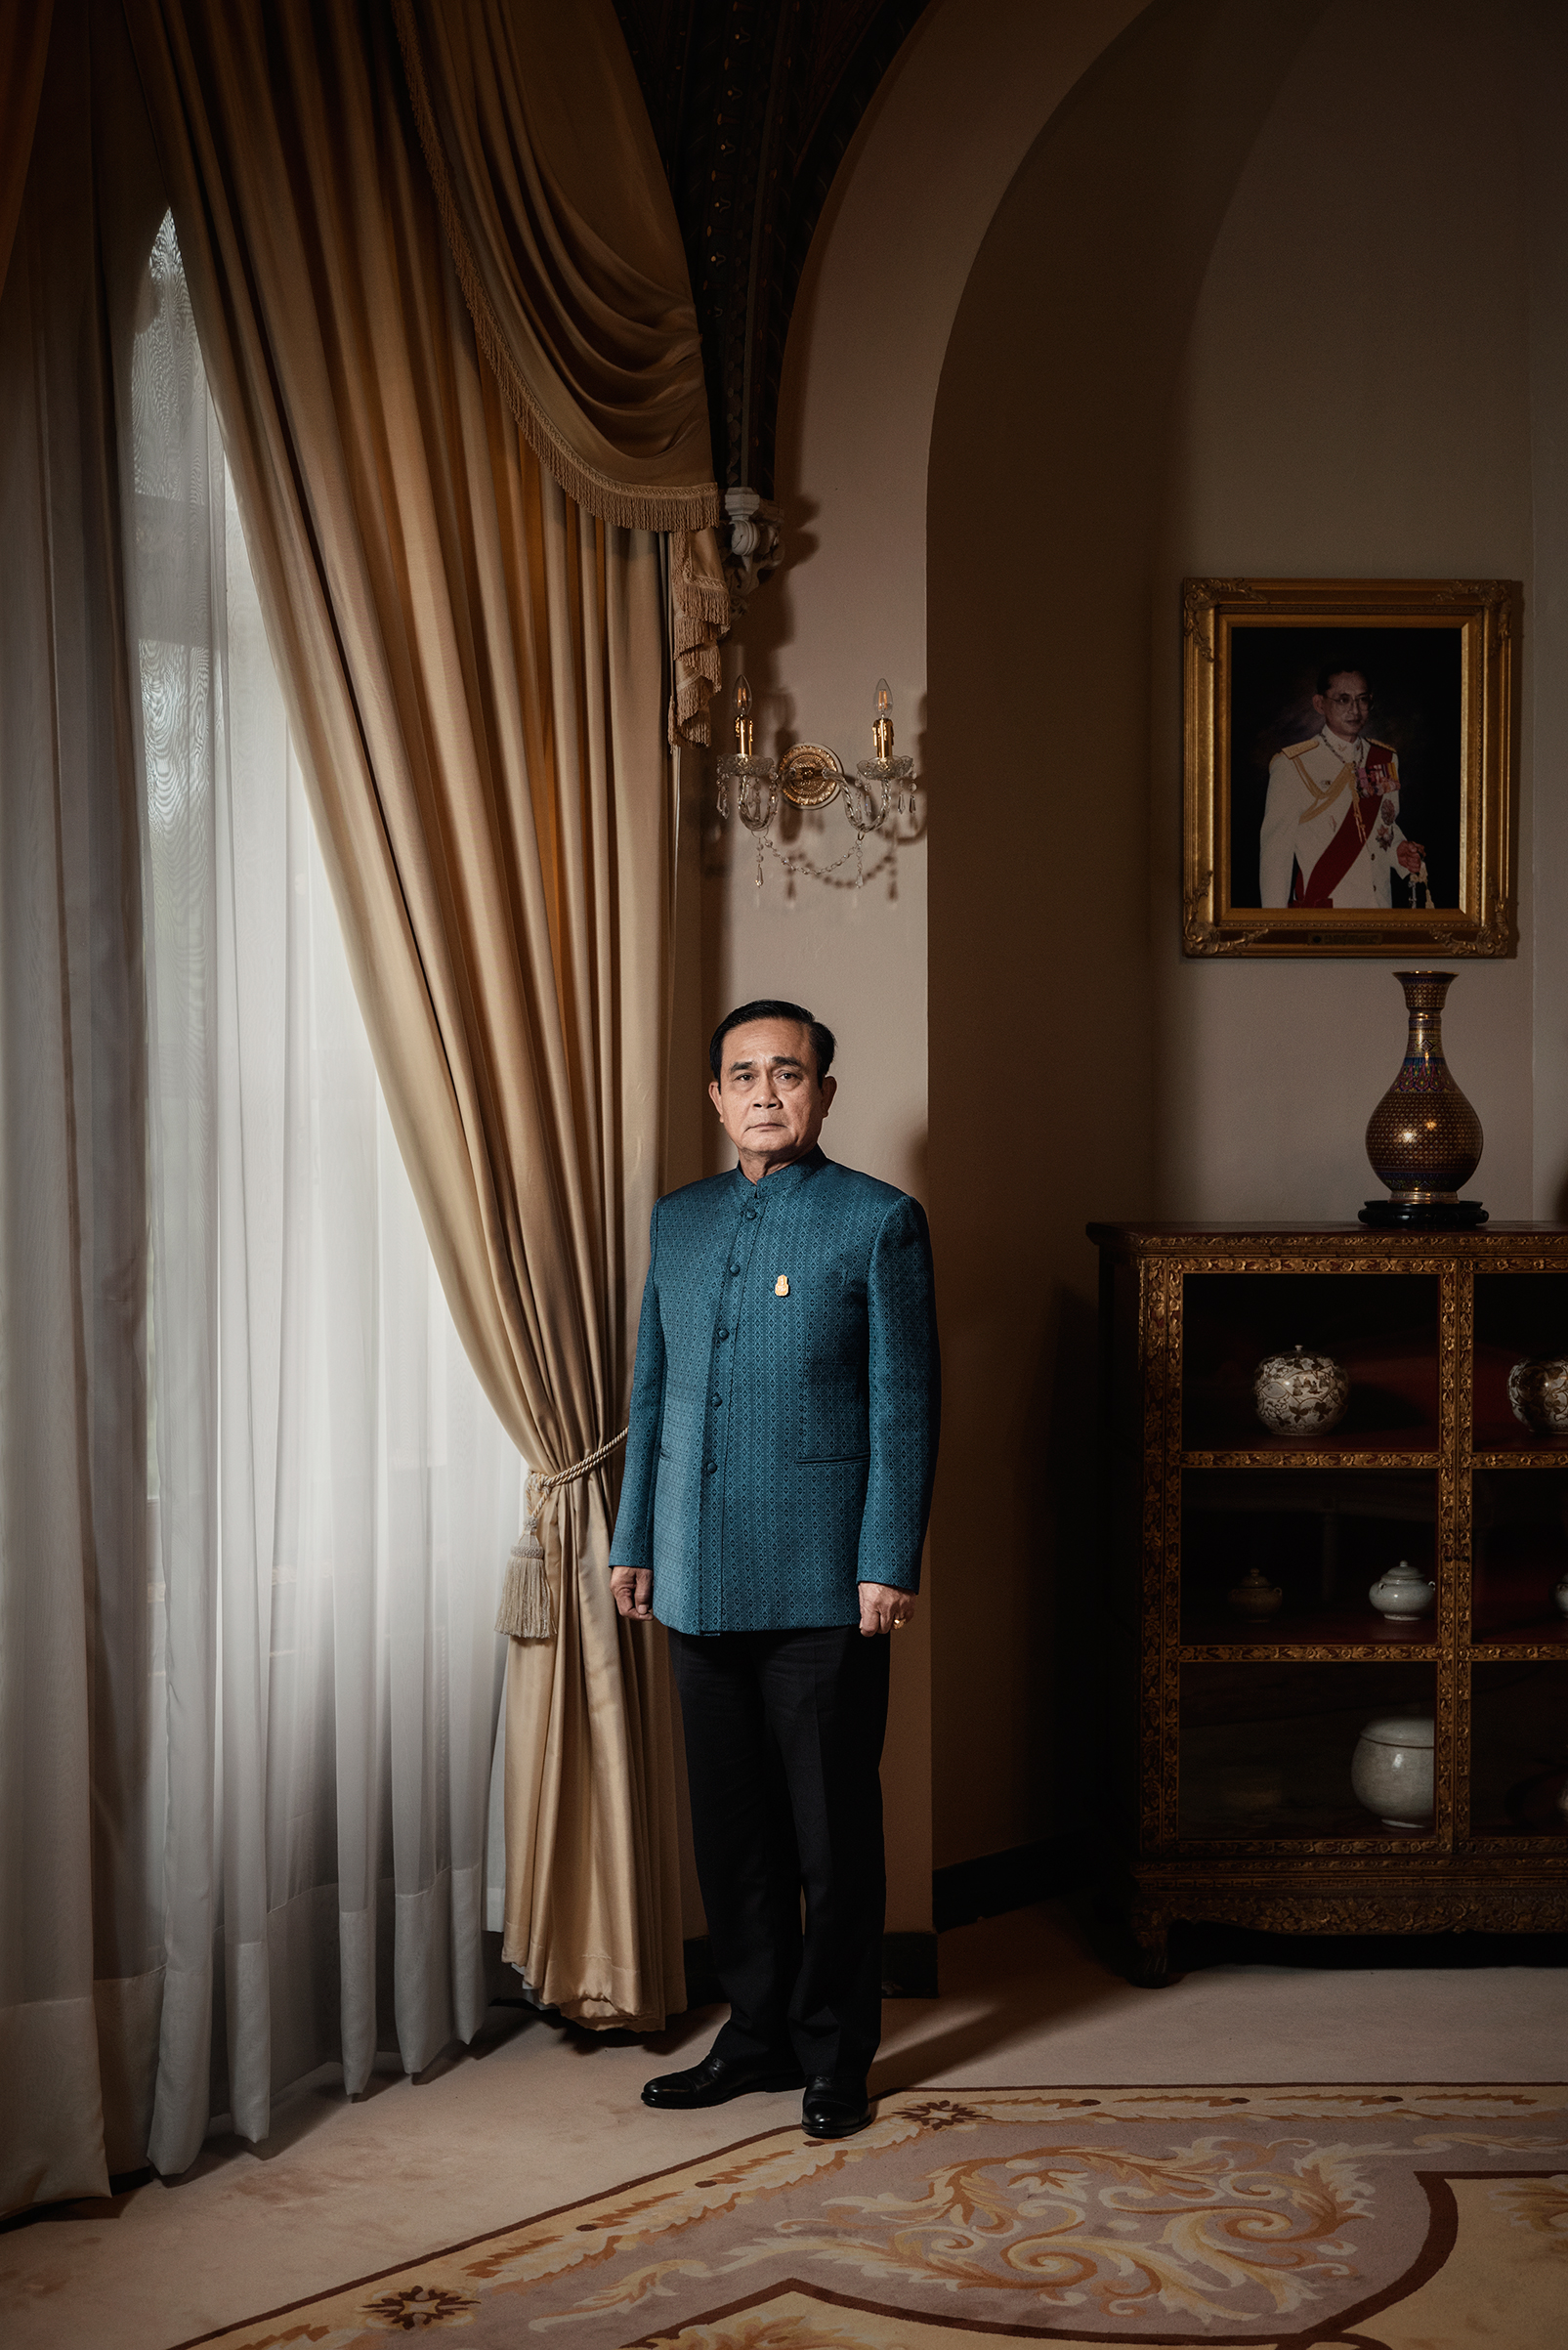 The Prime Minister of Thailand, Prayut Chan-o-cha, stands for a portrait at Government House in Bangkok, Thailand on Jun. 2, 2018.